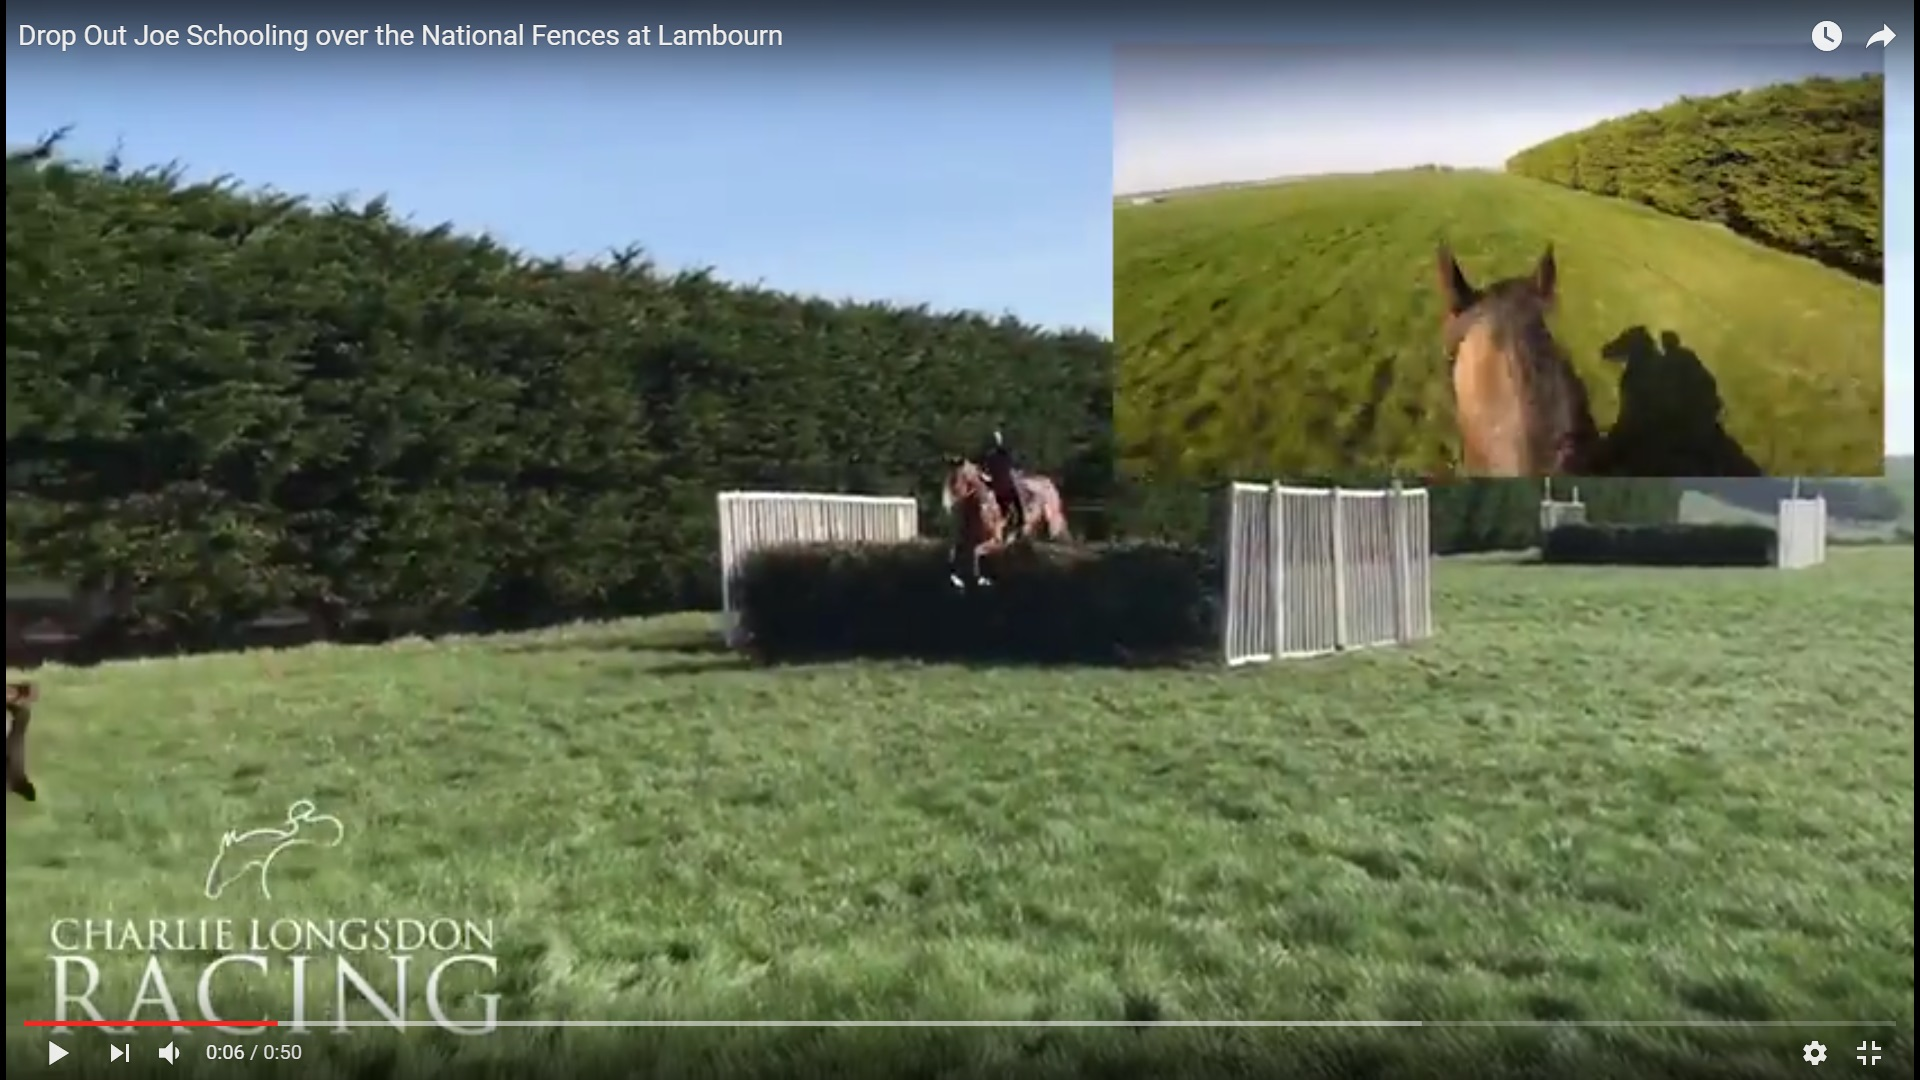 Drop Out Joe Schooling over National Fences in Lambourn